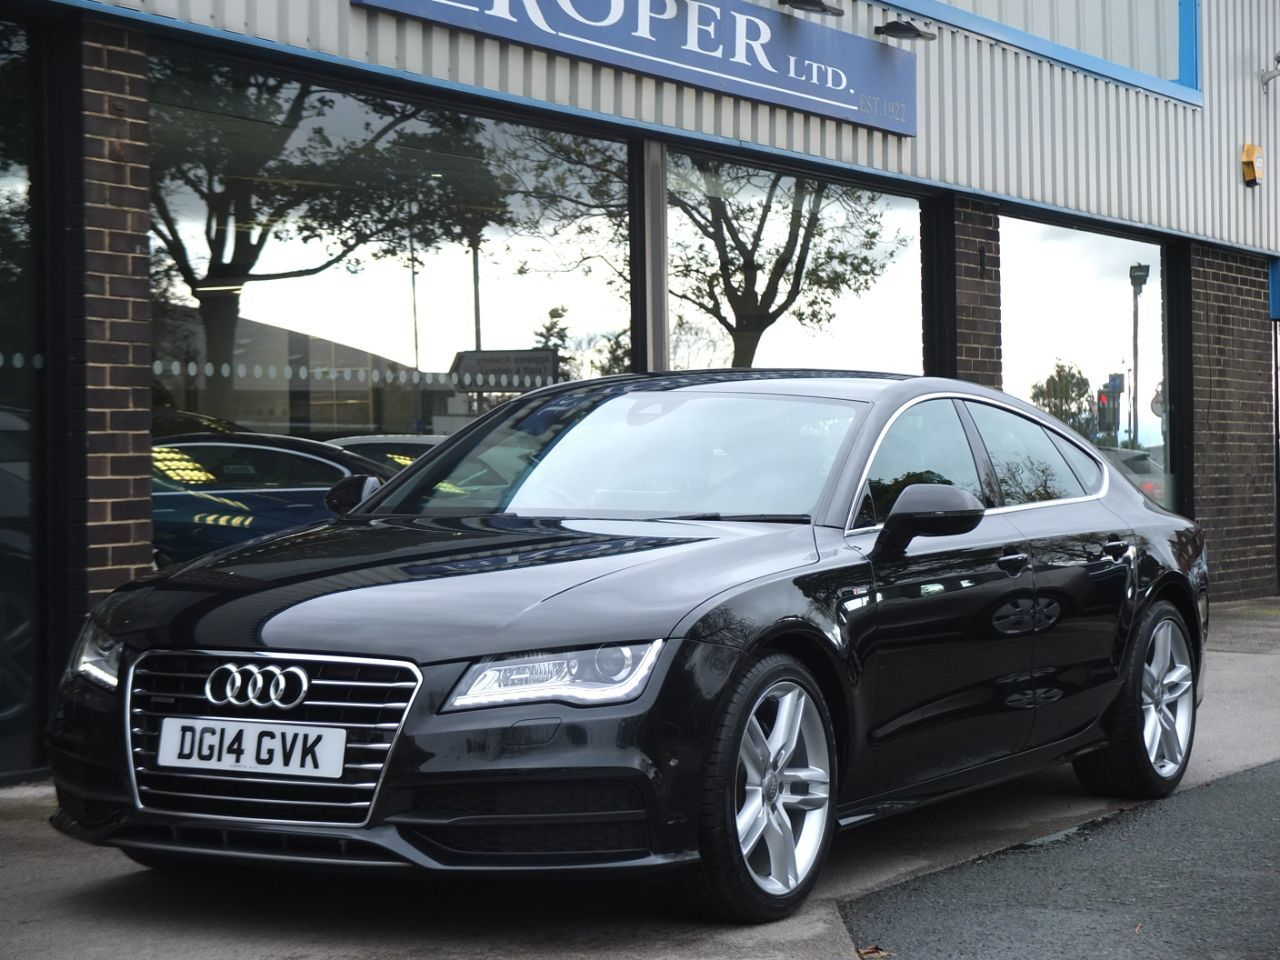 Audi A7 3.0 TDI quattro 204ps S Line S tronic Hatchback Diesel Phantom Black MetallicAudi A7 3.0 TDI quattro 204ps S Line S tronic Hatchback Diesel Phantom Black Metallic at fa Roper Ltd Bradford